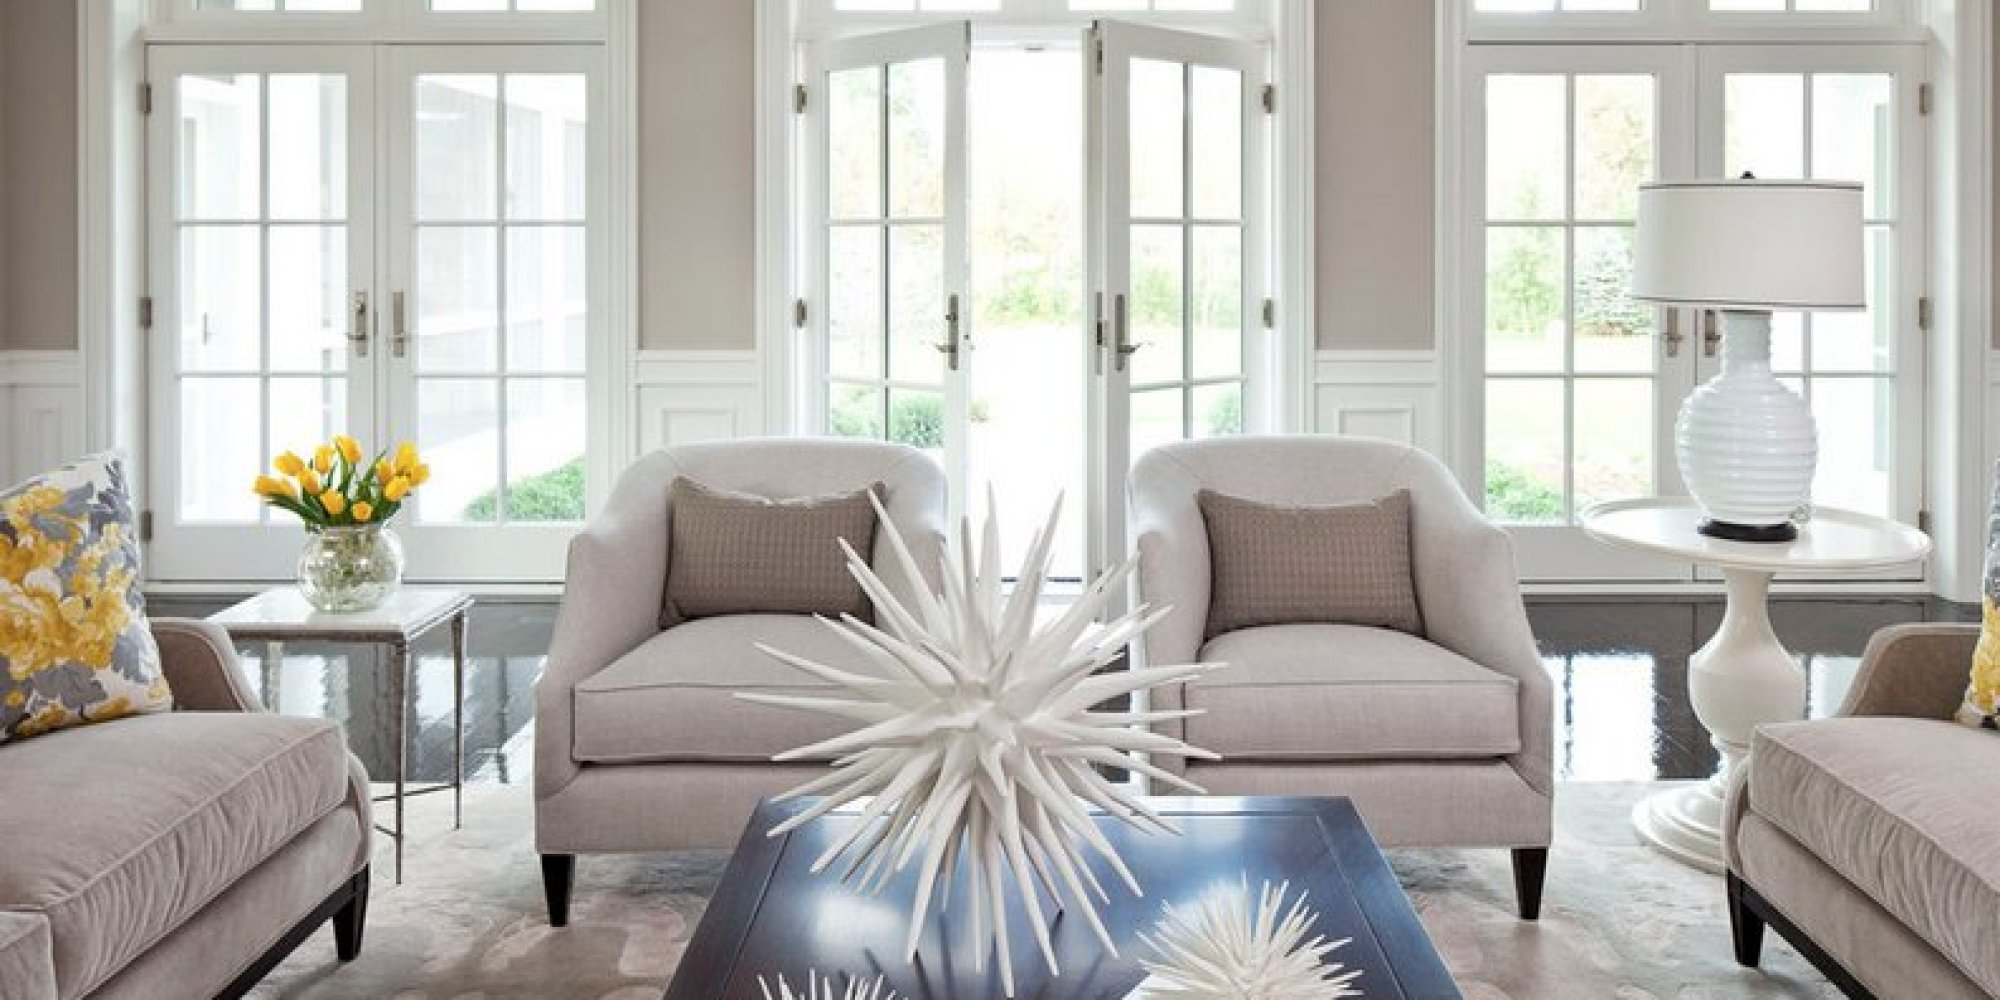 The 8 Best Neutral Paint Colors Thatll Work In Any Home No Matter